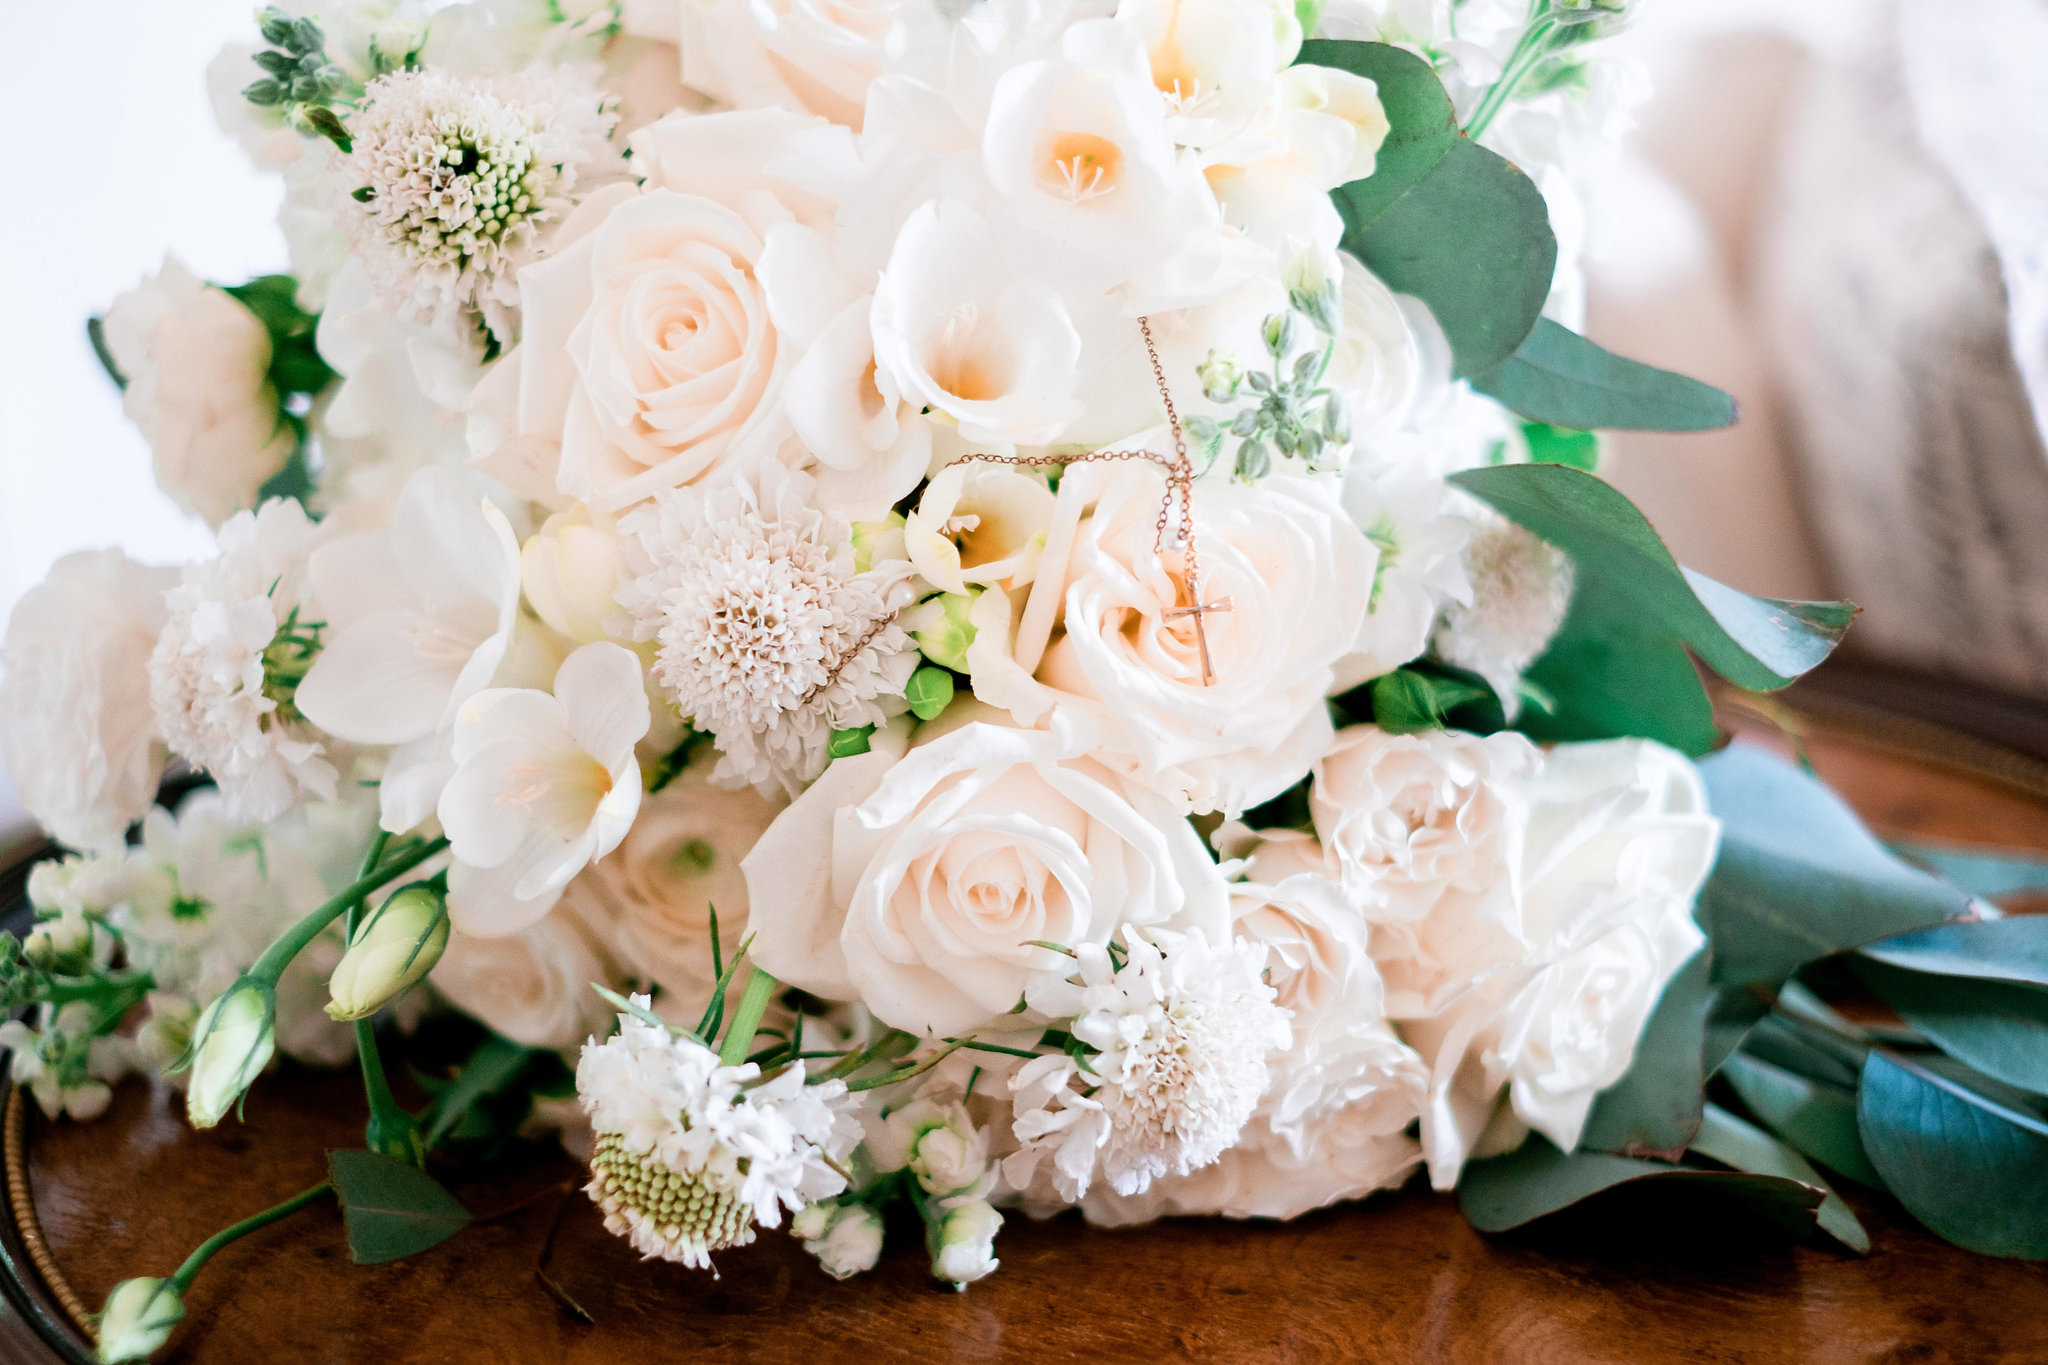 Ivory bridal bouquet by Mitch's Flowers